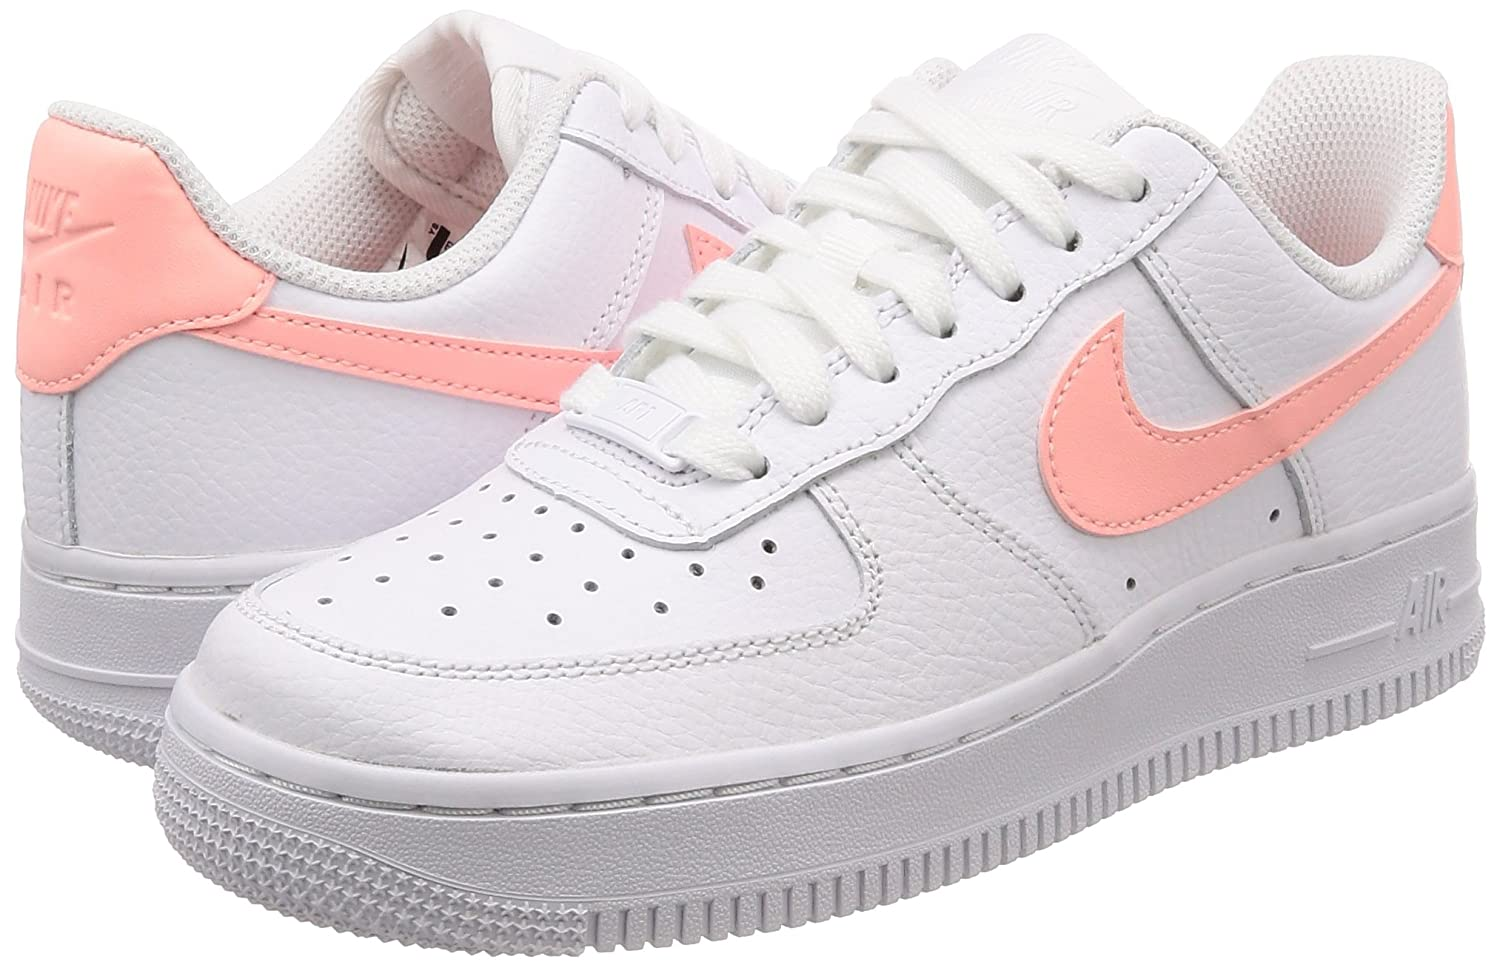 new product 022ee 4cf6f NIKE Air Force 1 07 Patent, Sneakers Basses Femme